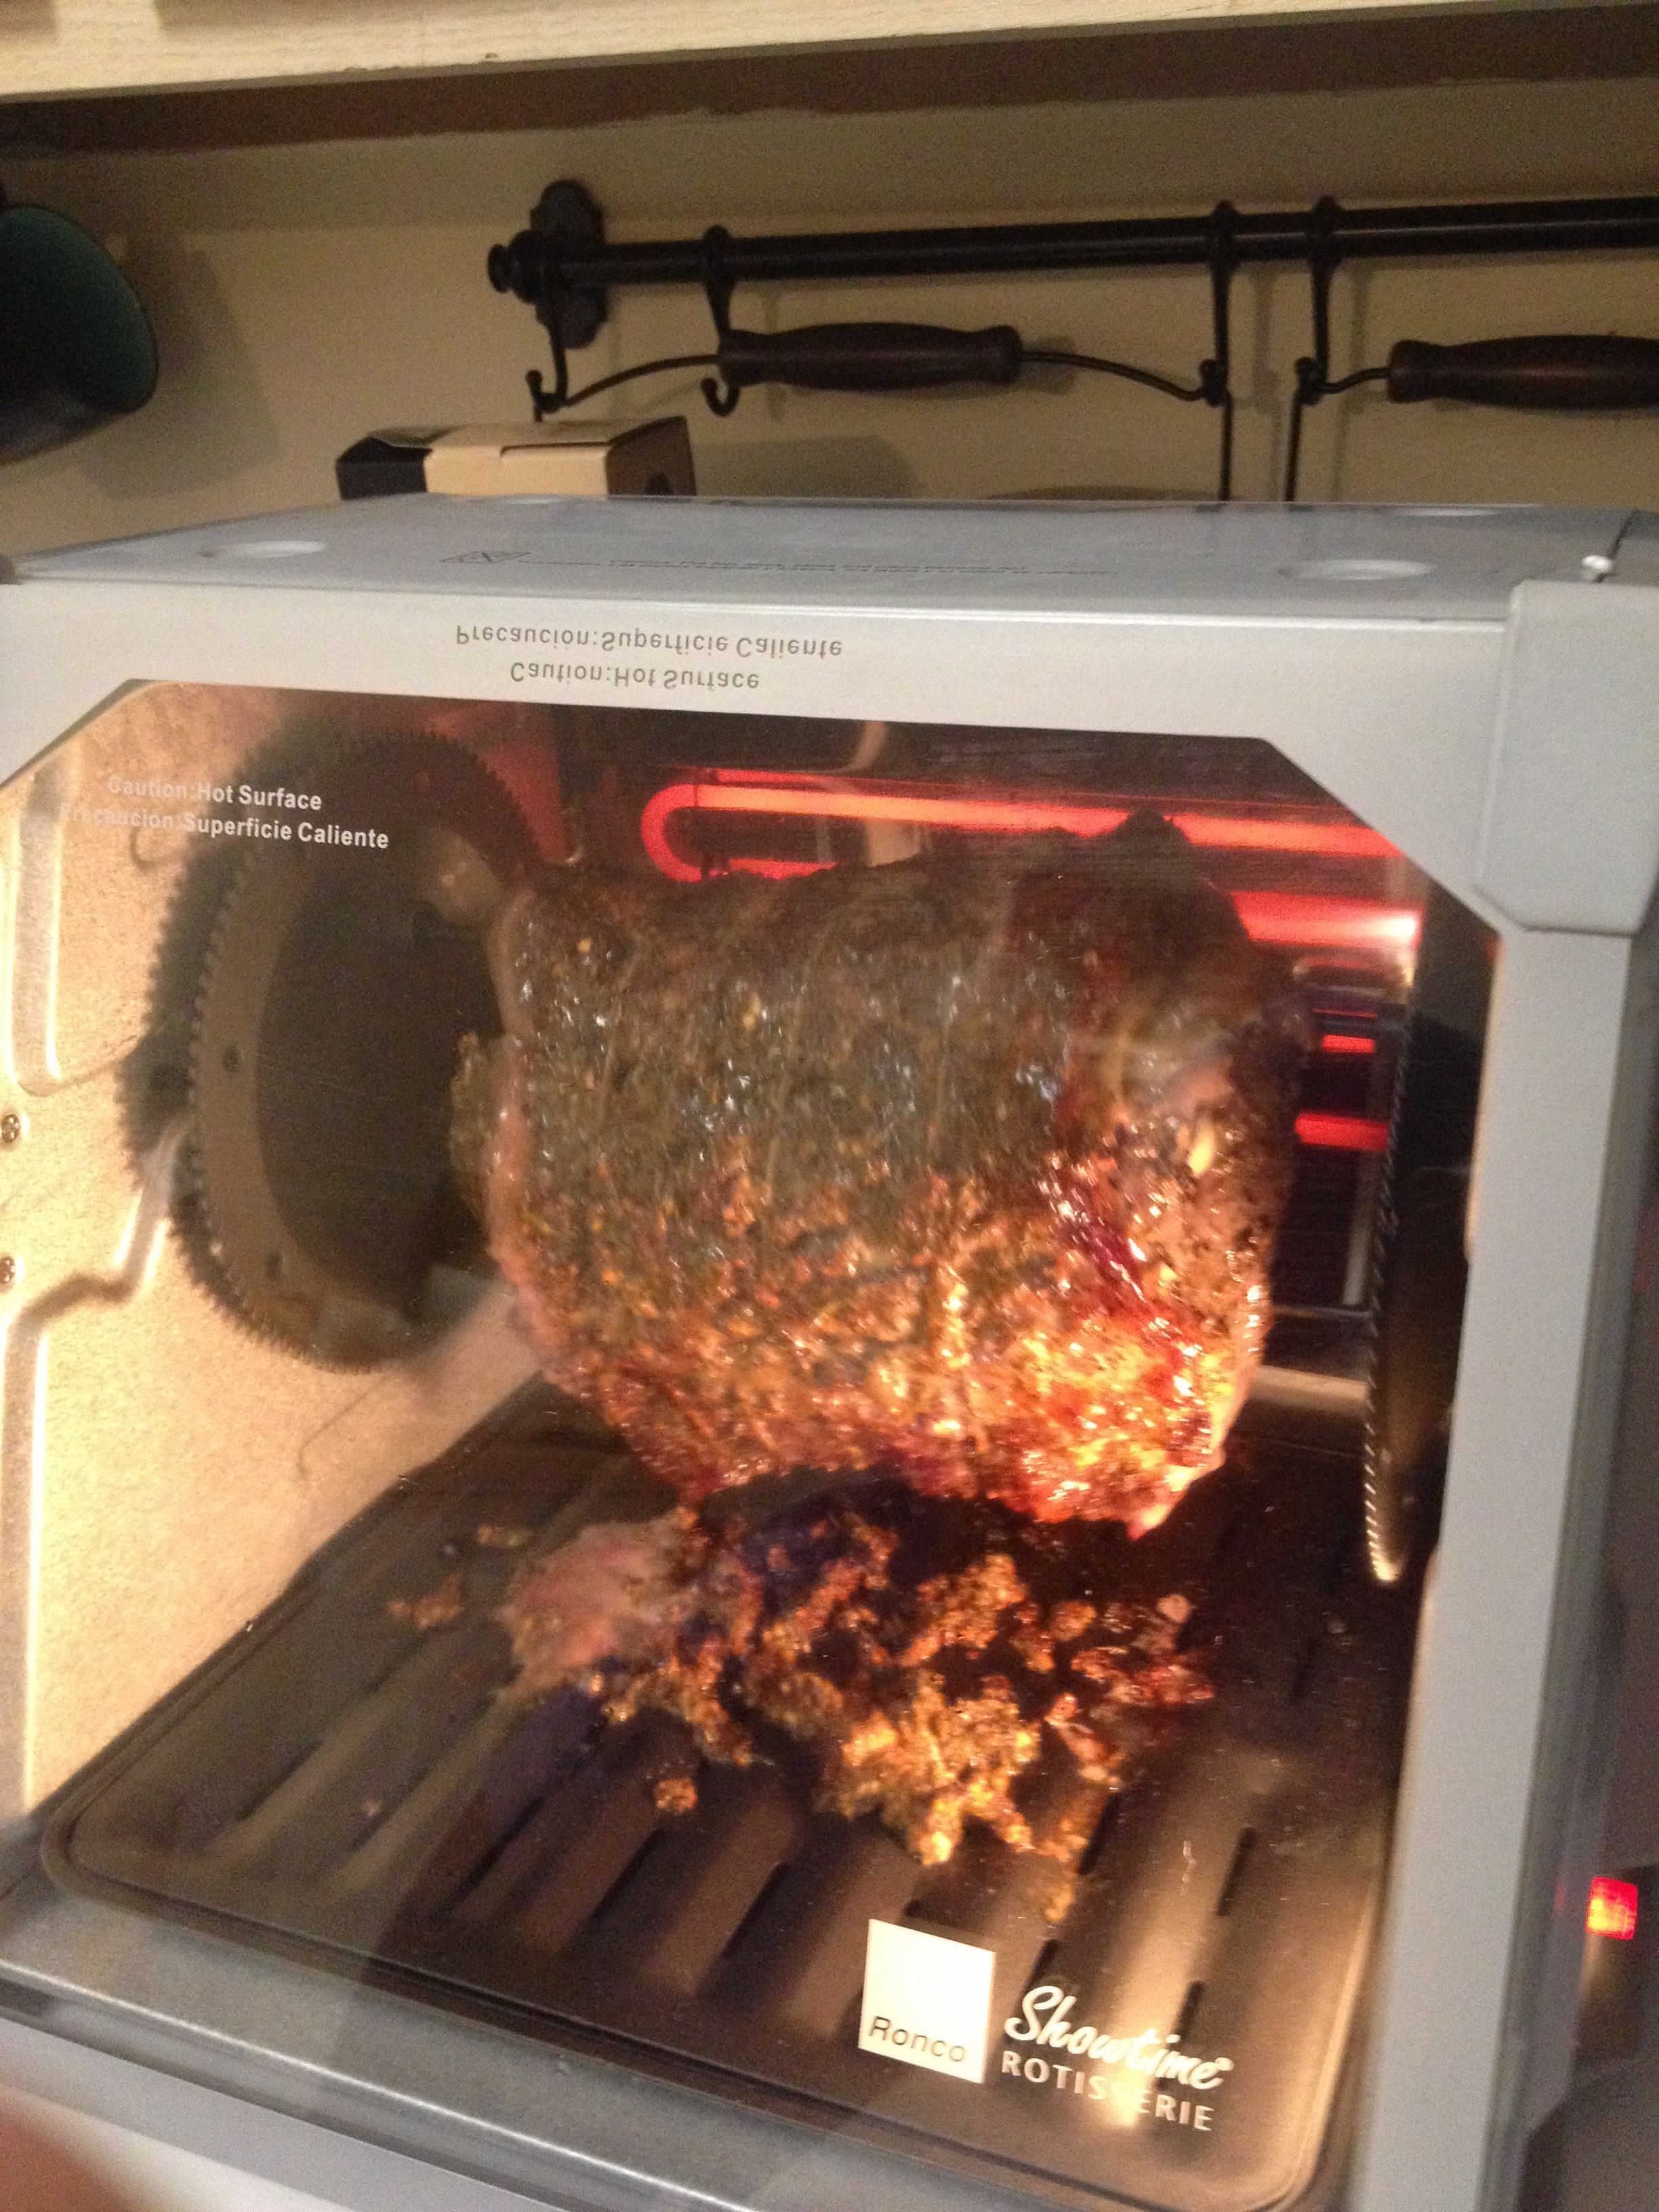 Prime Rib In Rotisserie Food By Hand In 2019 Beef Recipes For Dinner Rotisserie Cooker